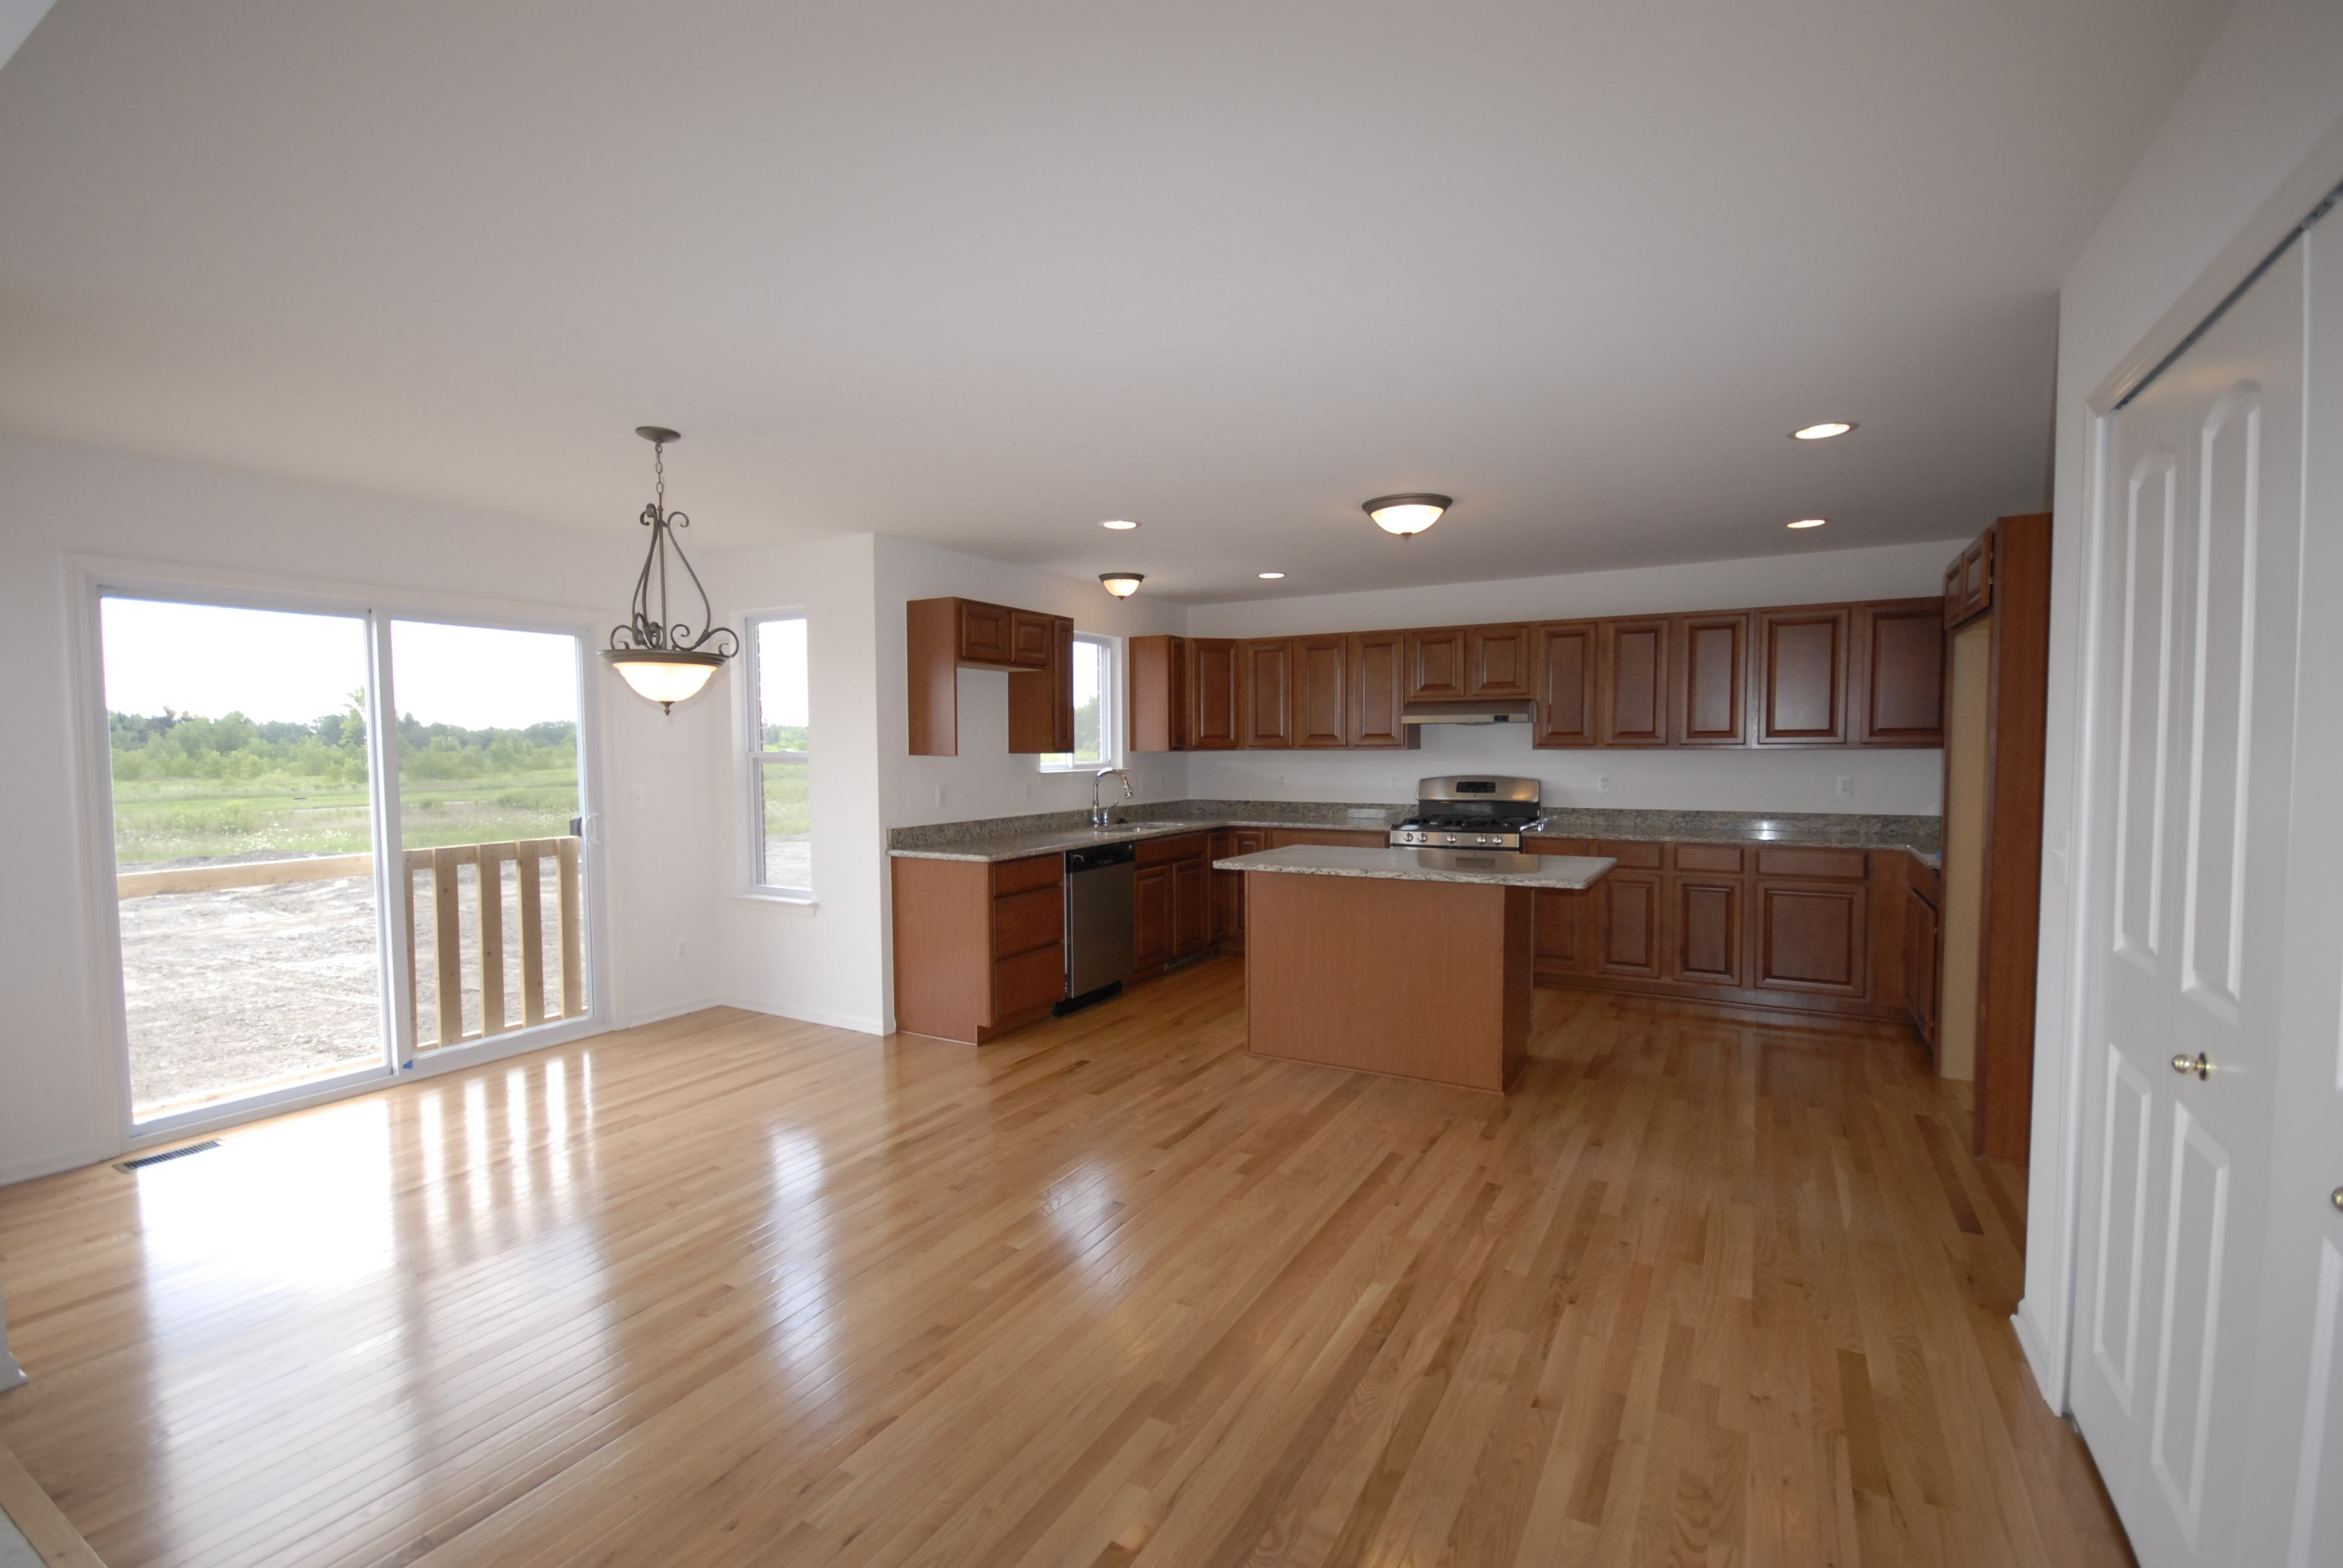 Kitchen featured in the Nantucket By Singh Homes in Detroit, MI